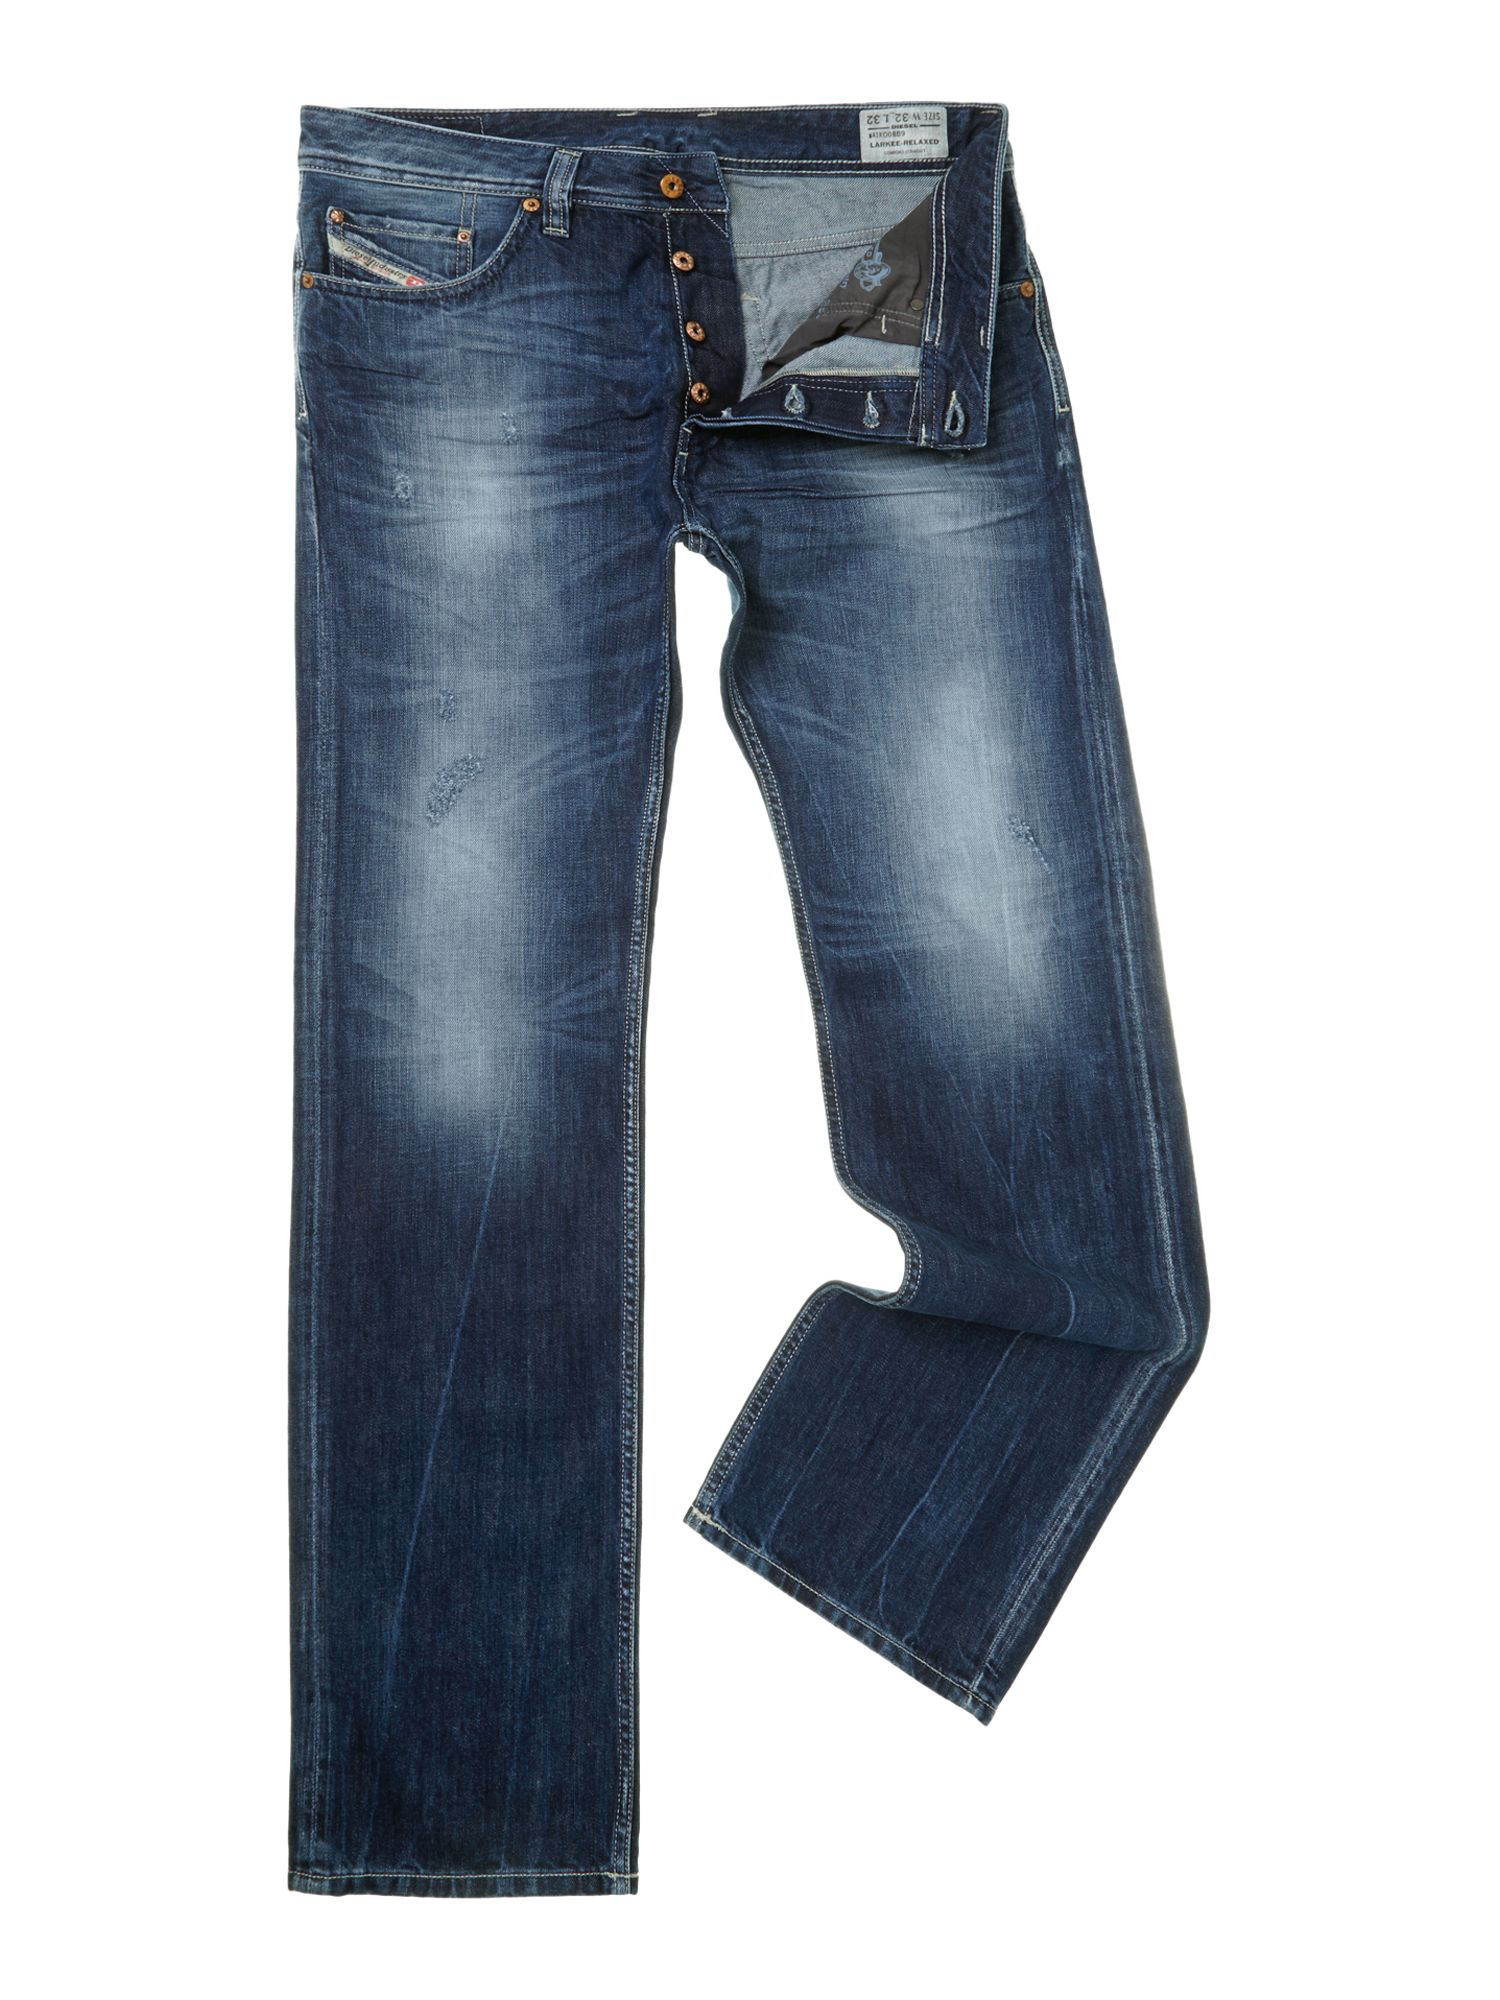 Larkee relaxed 8b9 jean